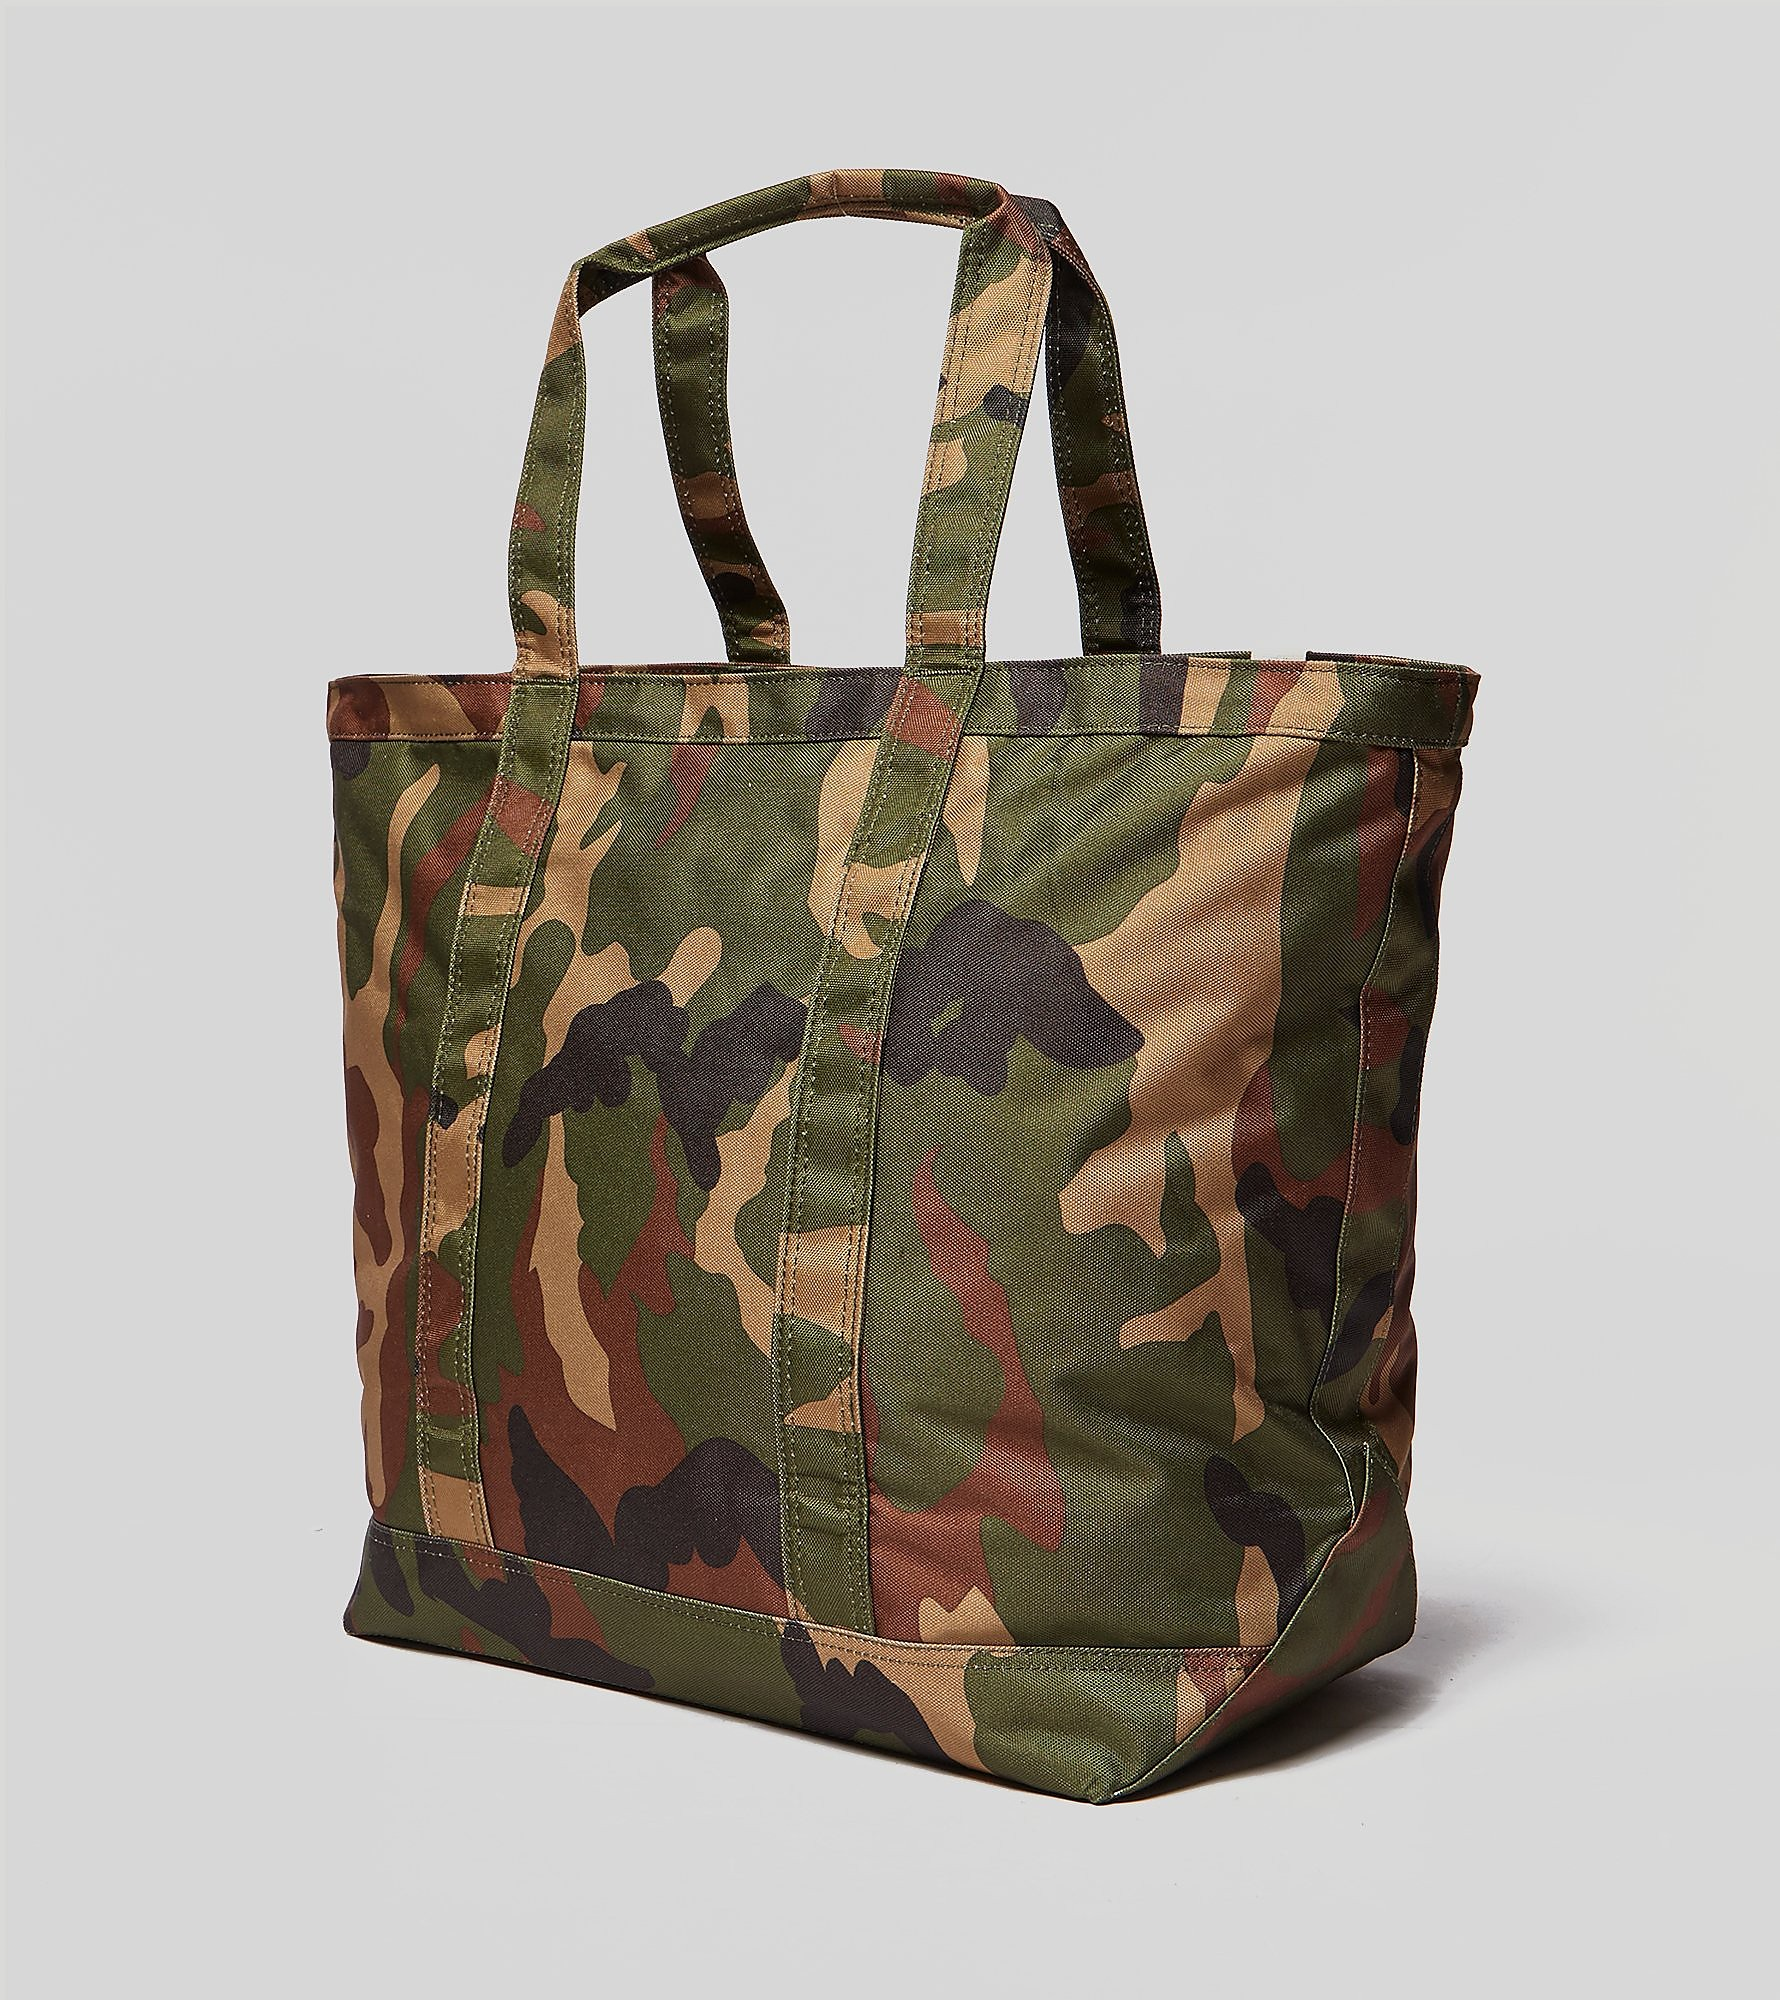 Herschel Supply Co Bamfield Mid Tote - size? Exclusive